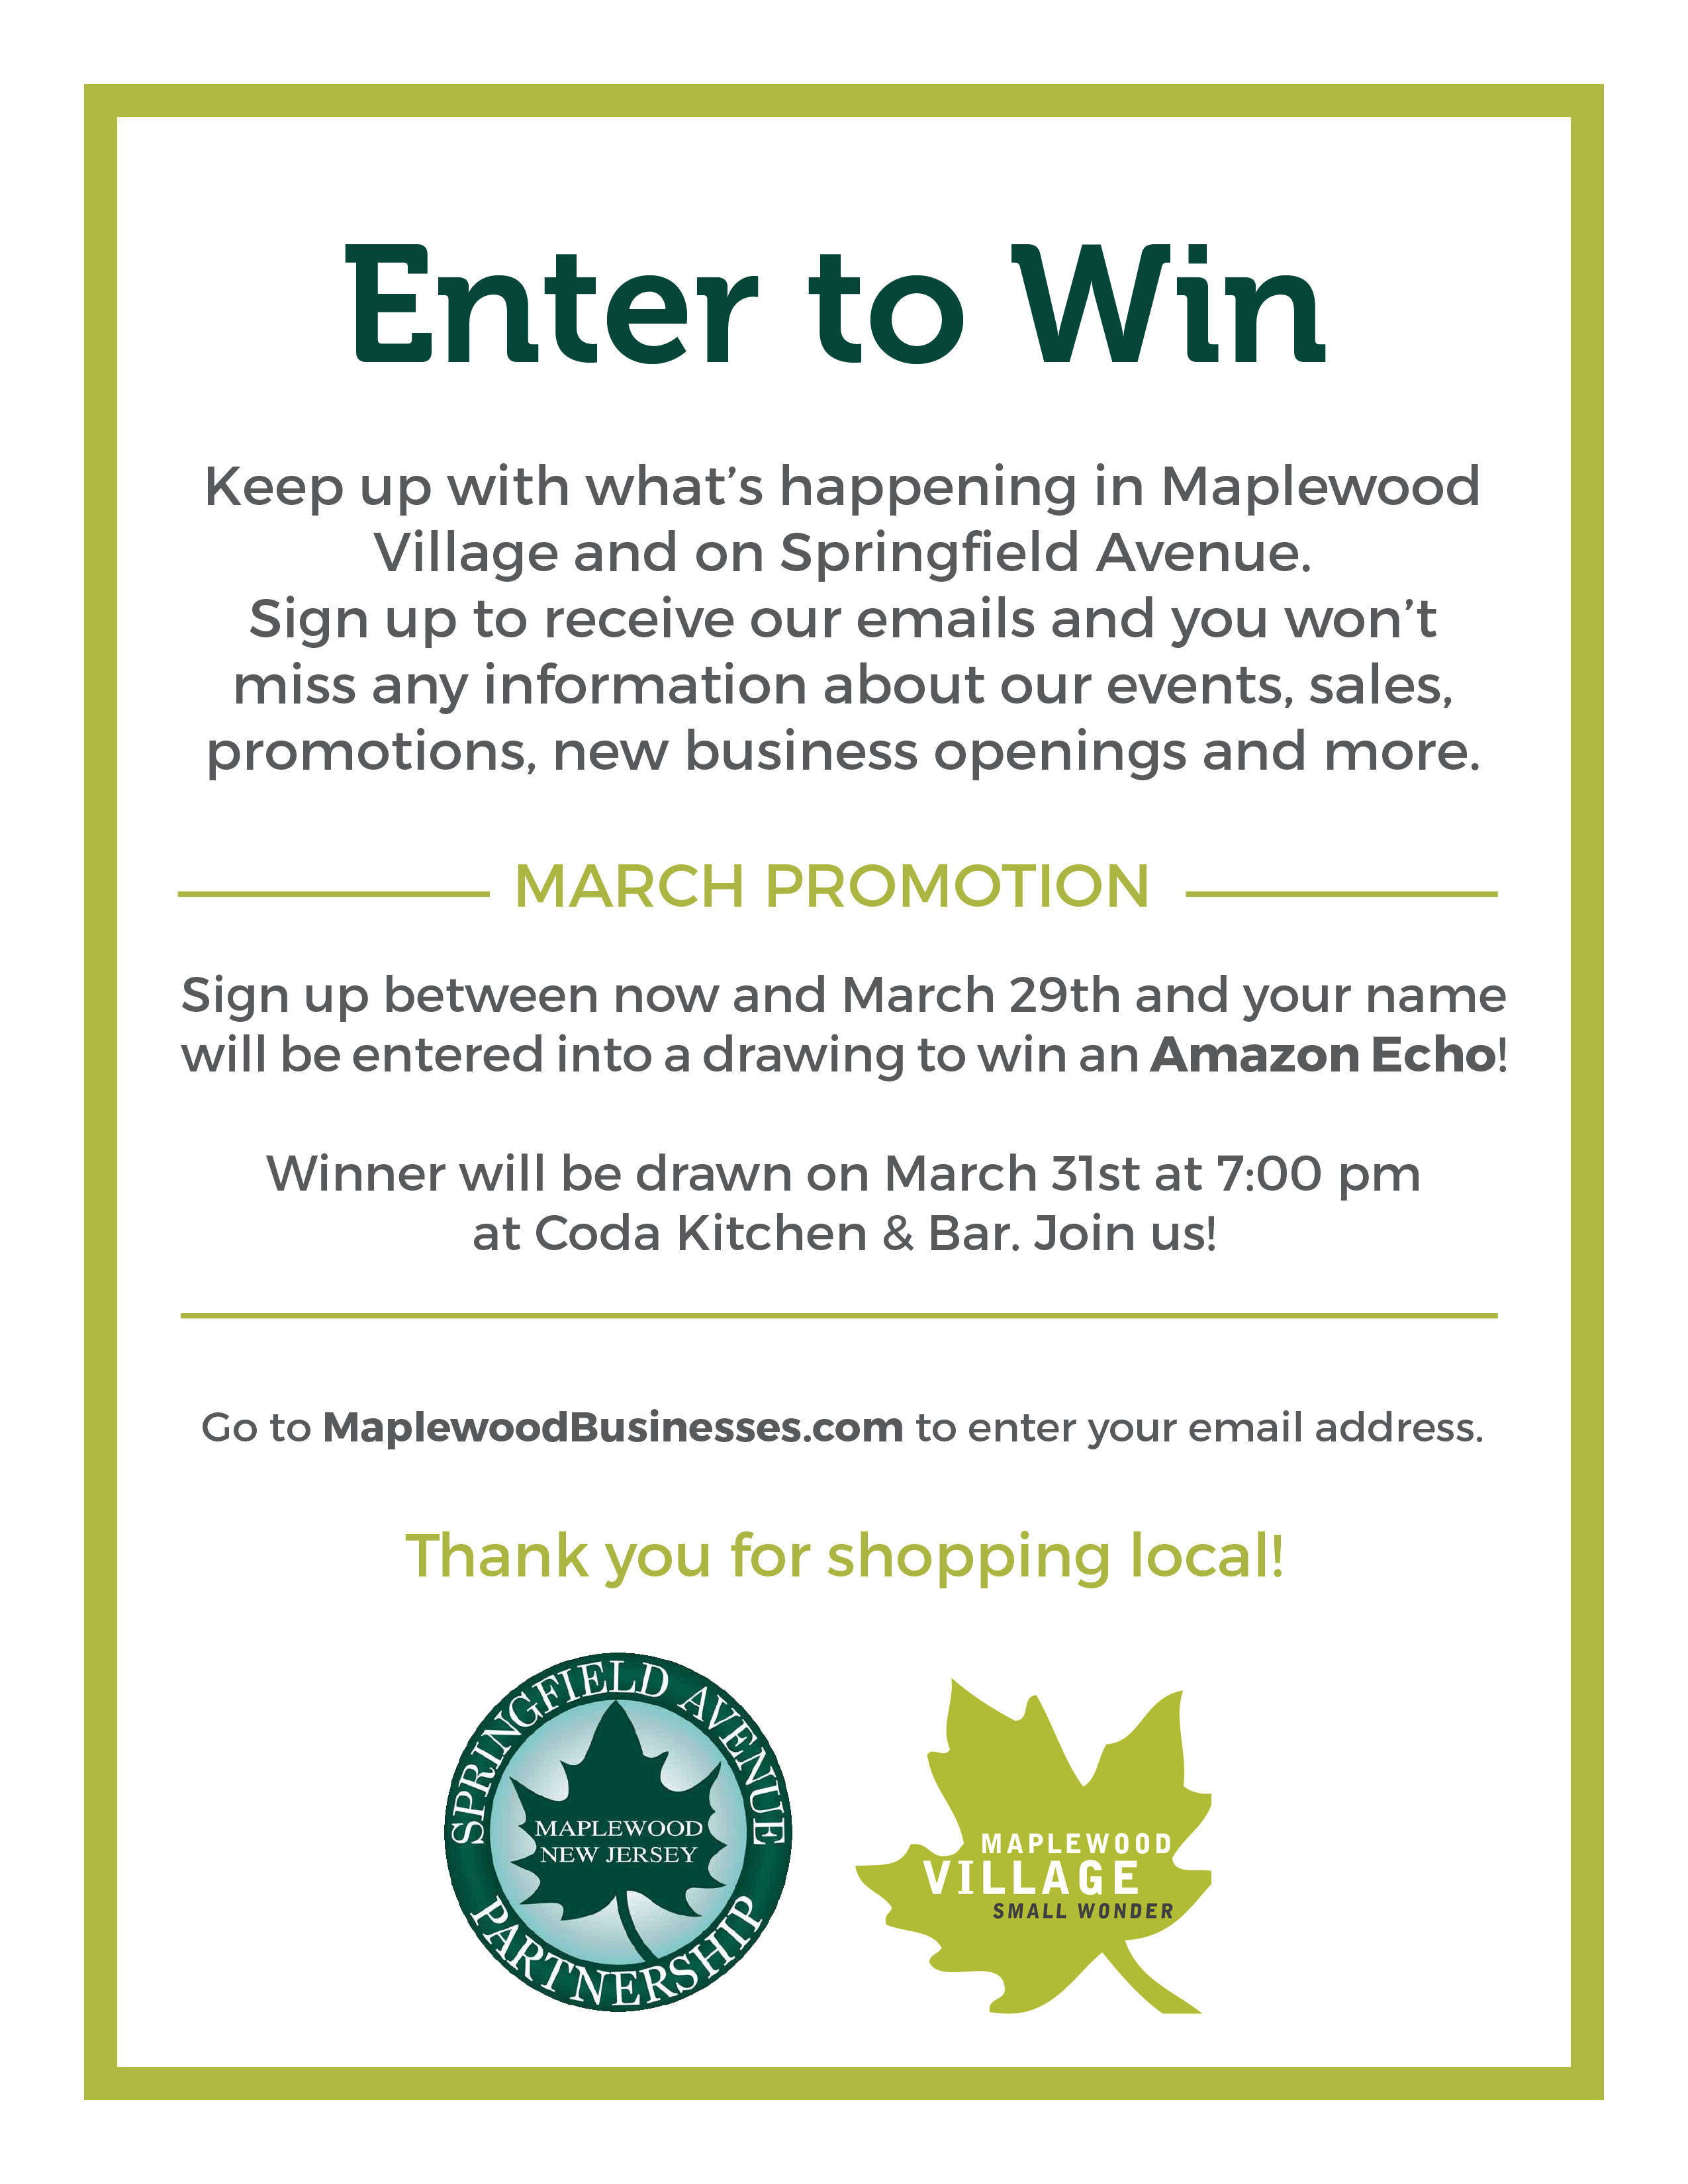 21e7bc9c43f1b87156be_Enter_to_win_maplewood.jpg